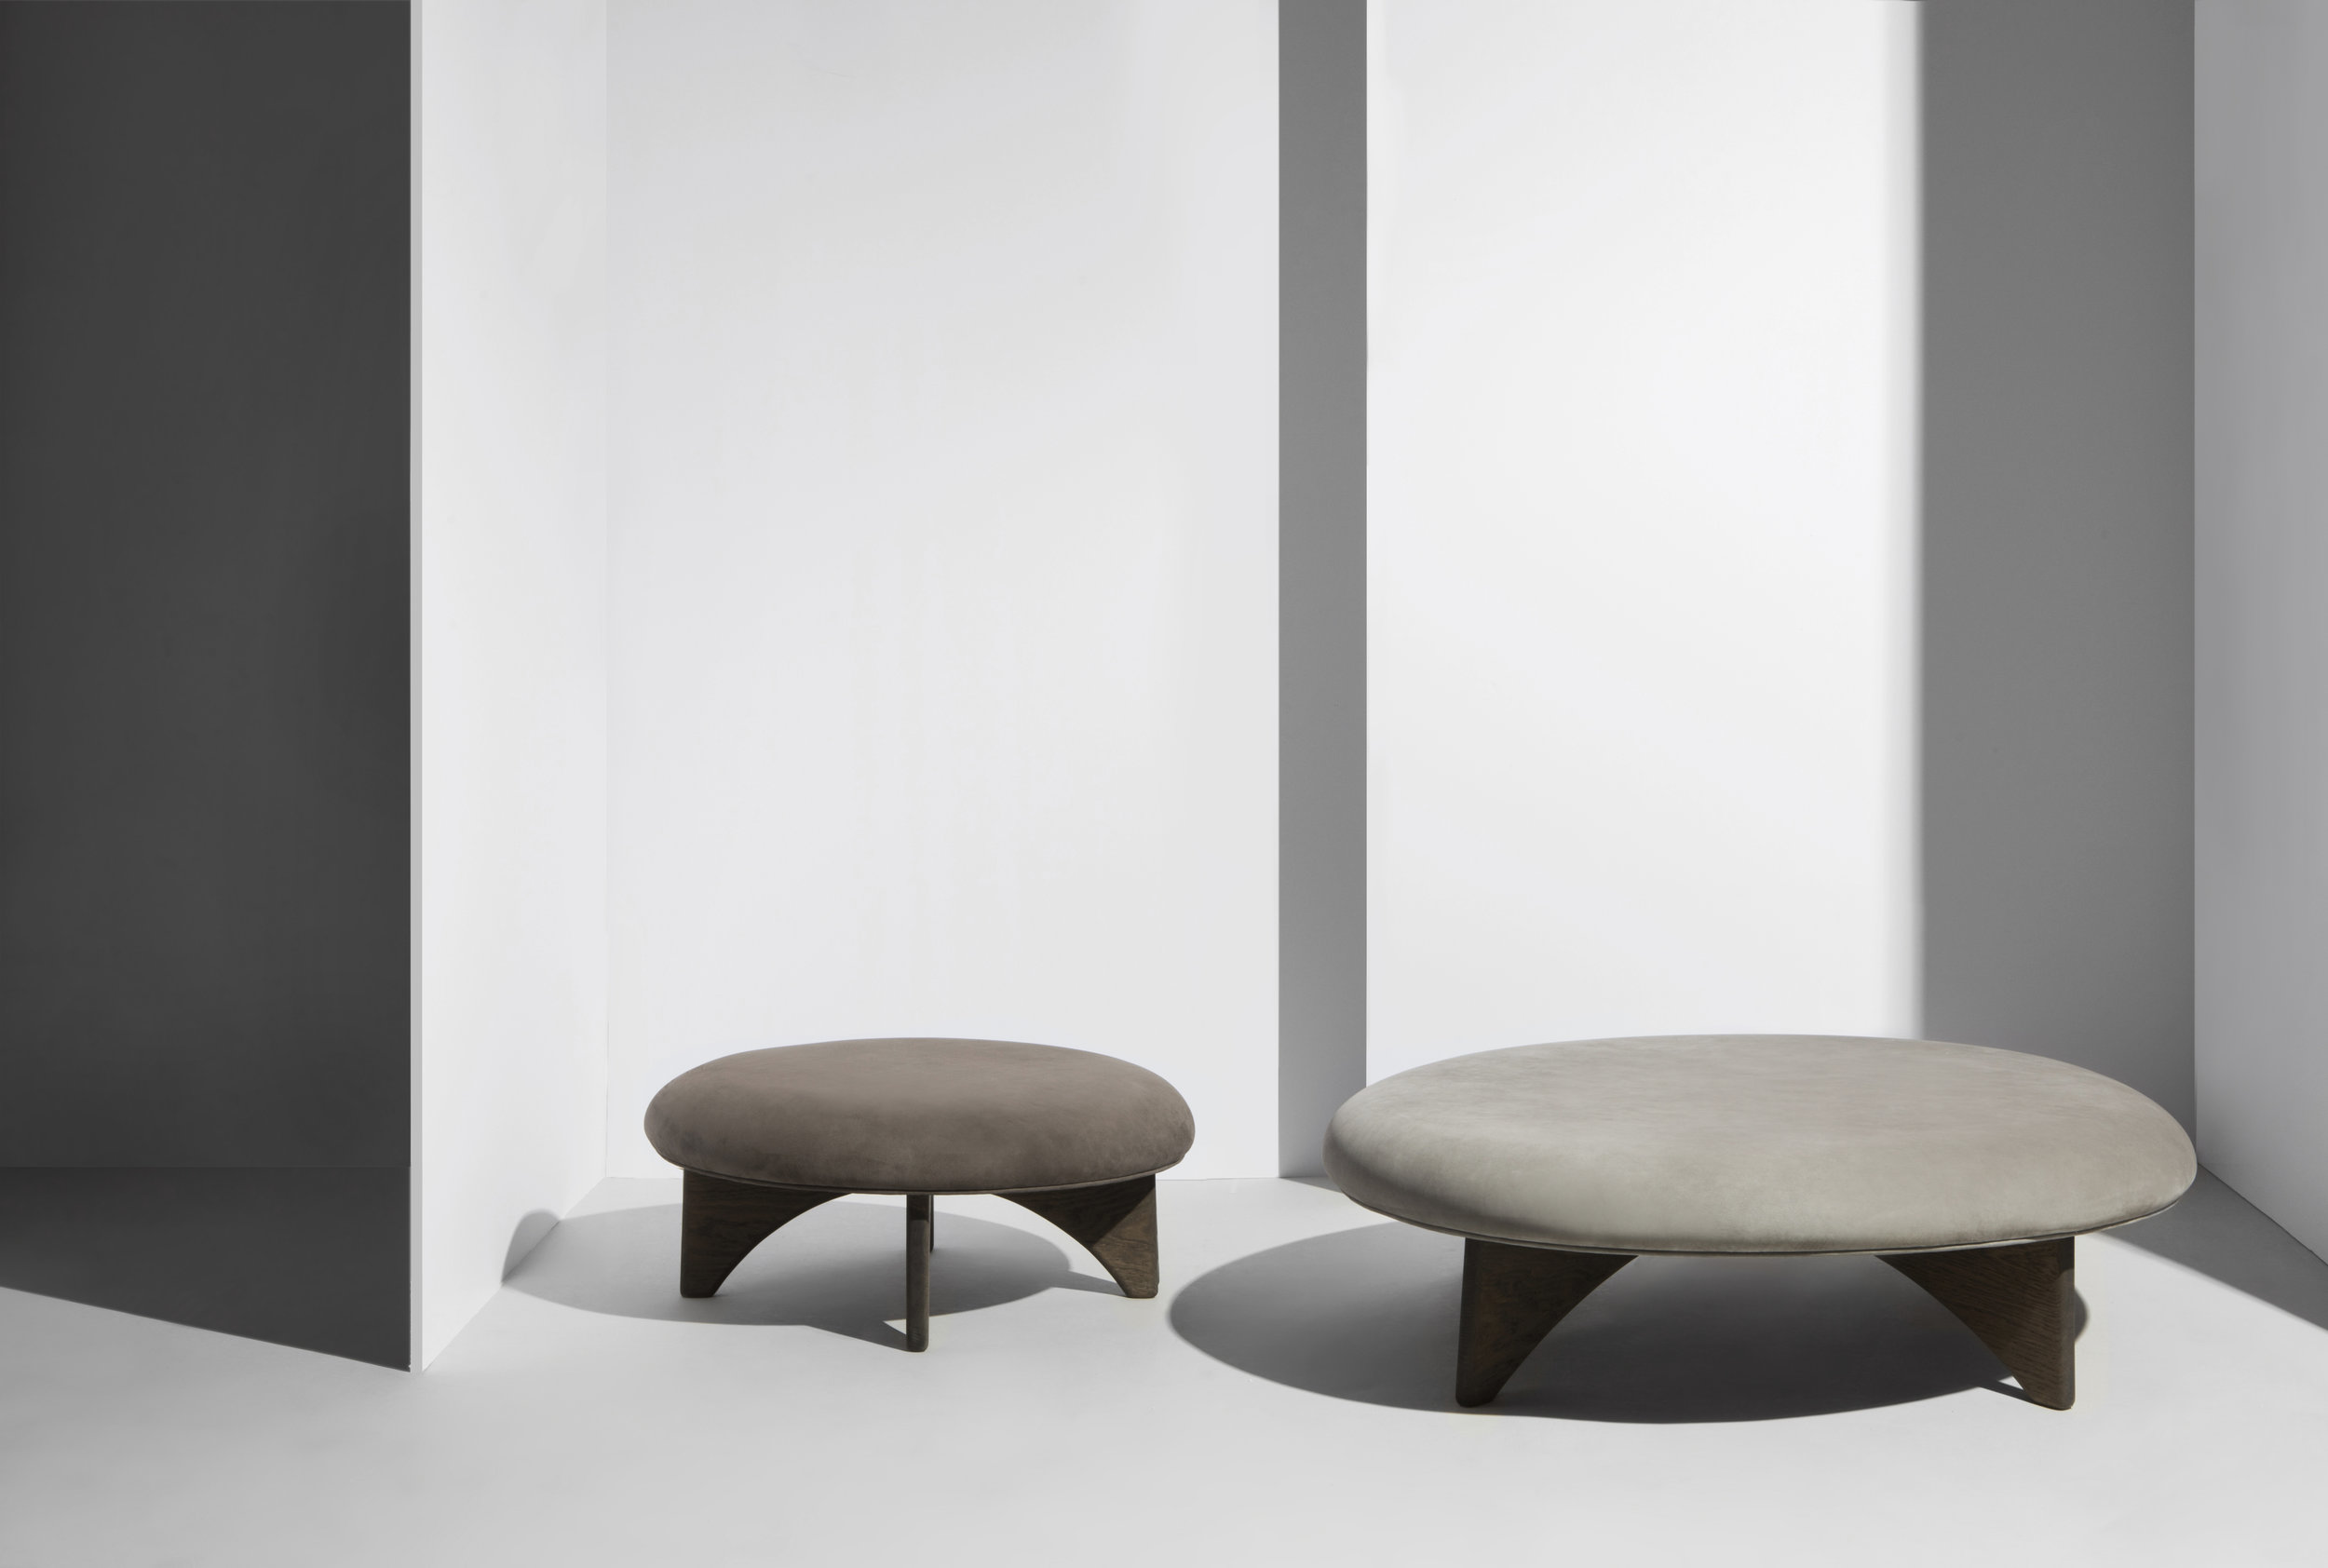 Norm Architects_Utility stools_1.jpg